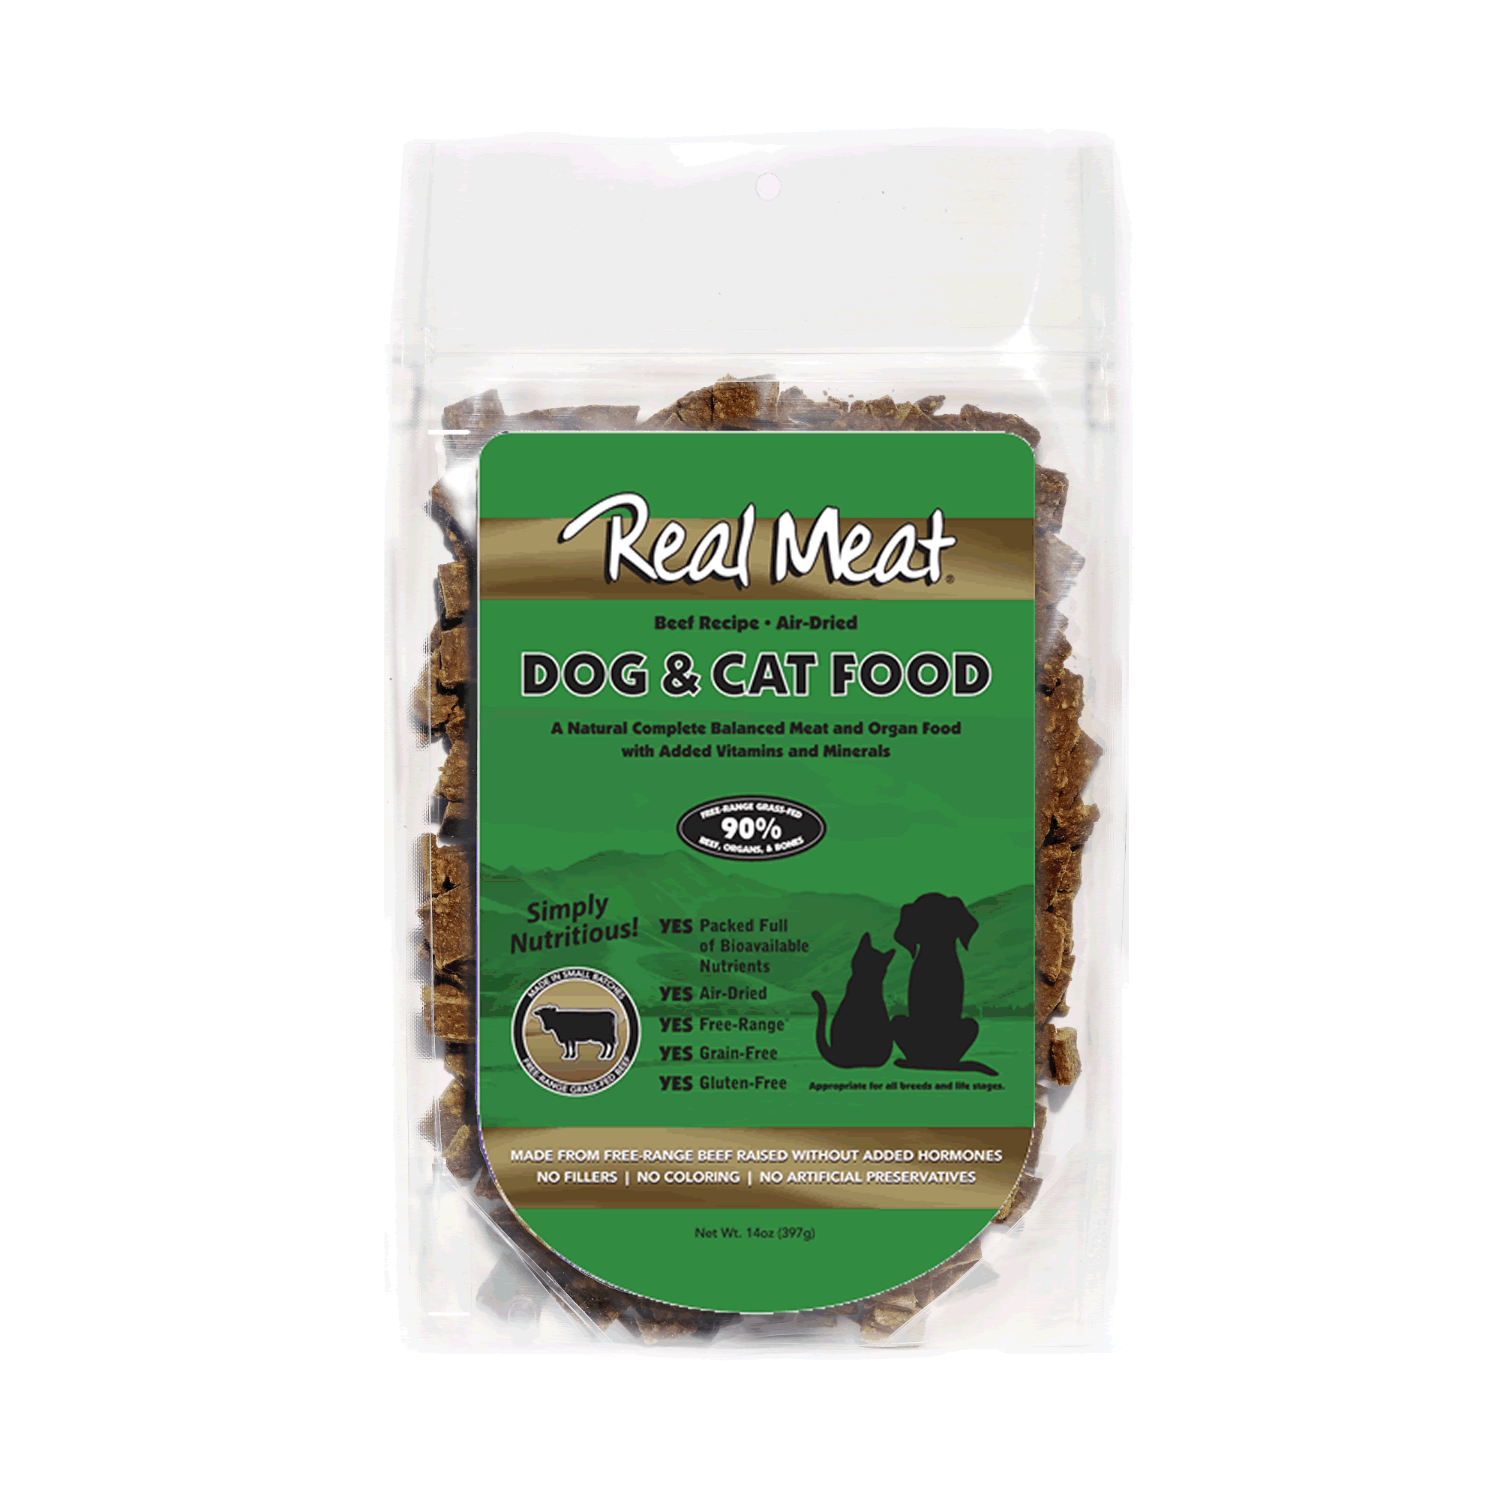 Real Meat Dog and Cat Food - Beef